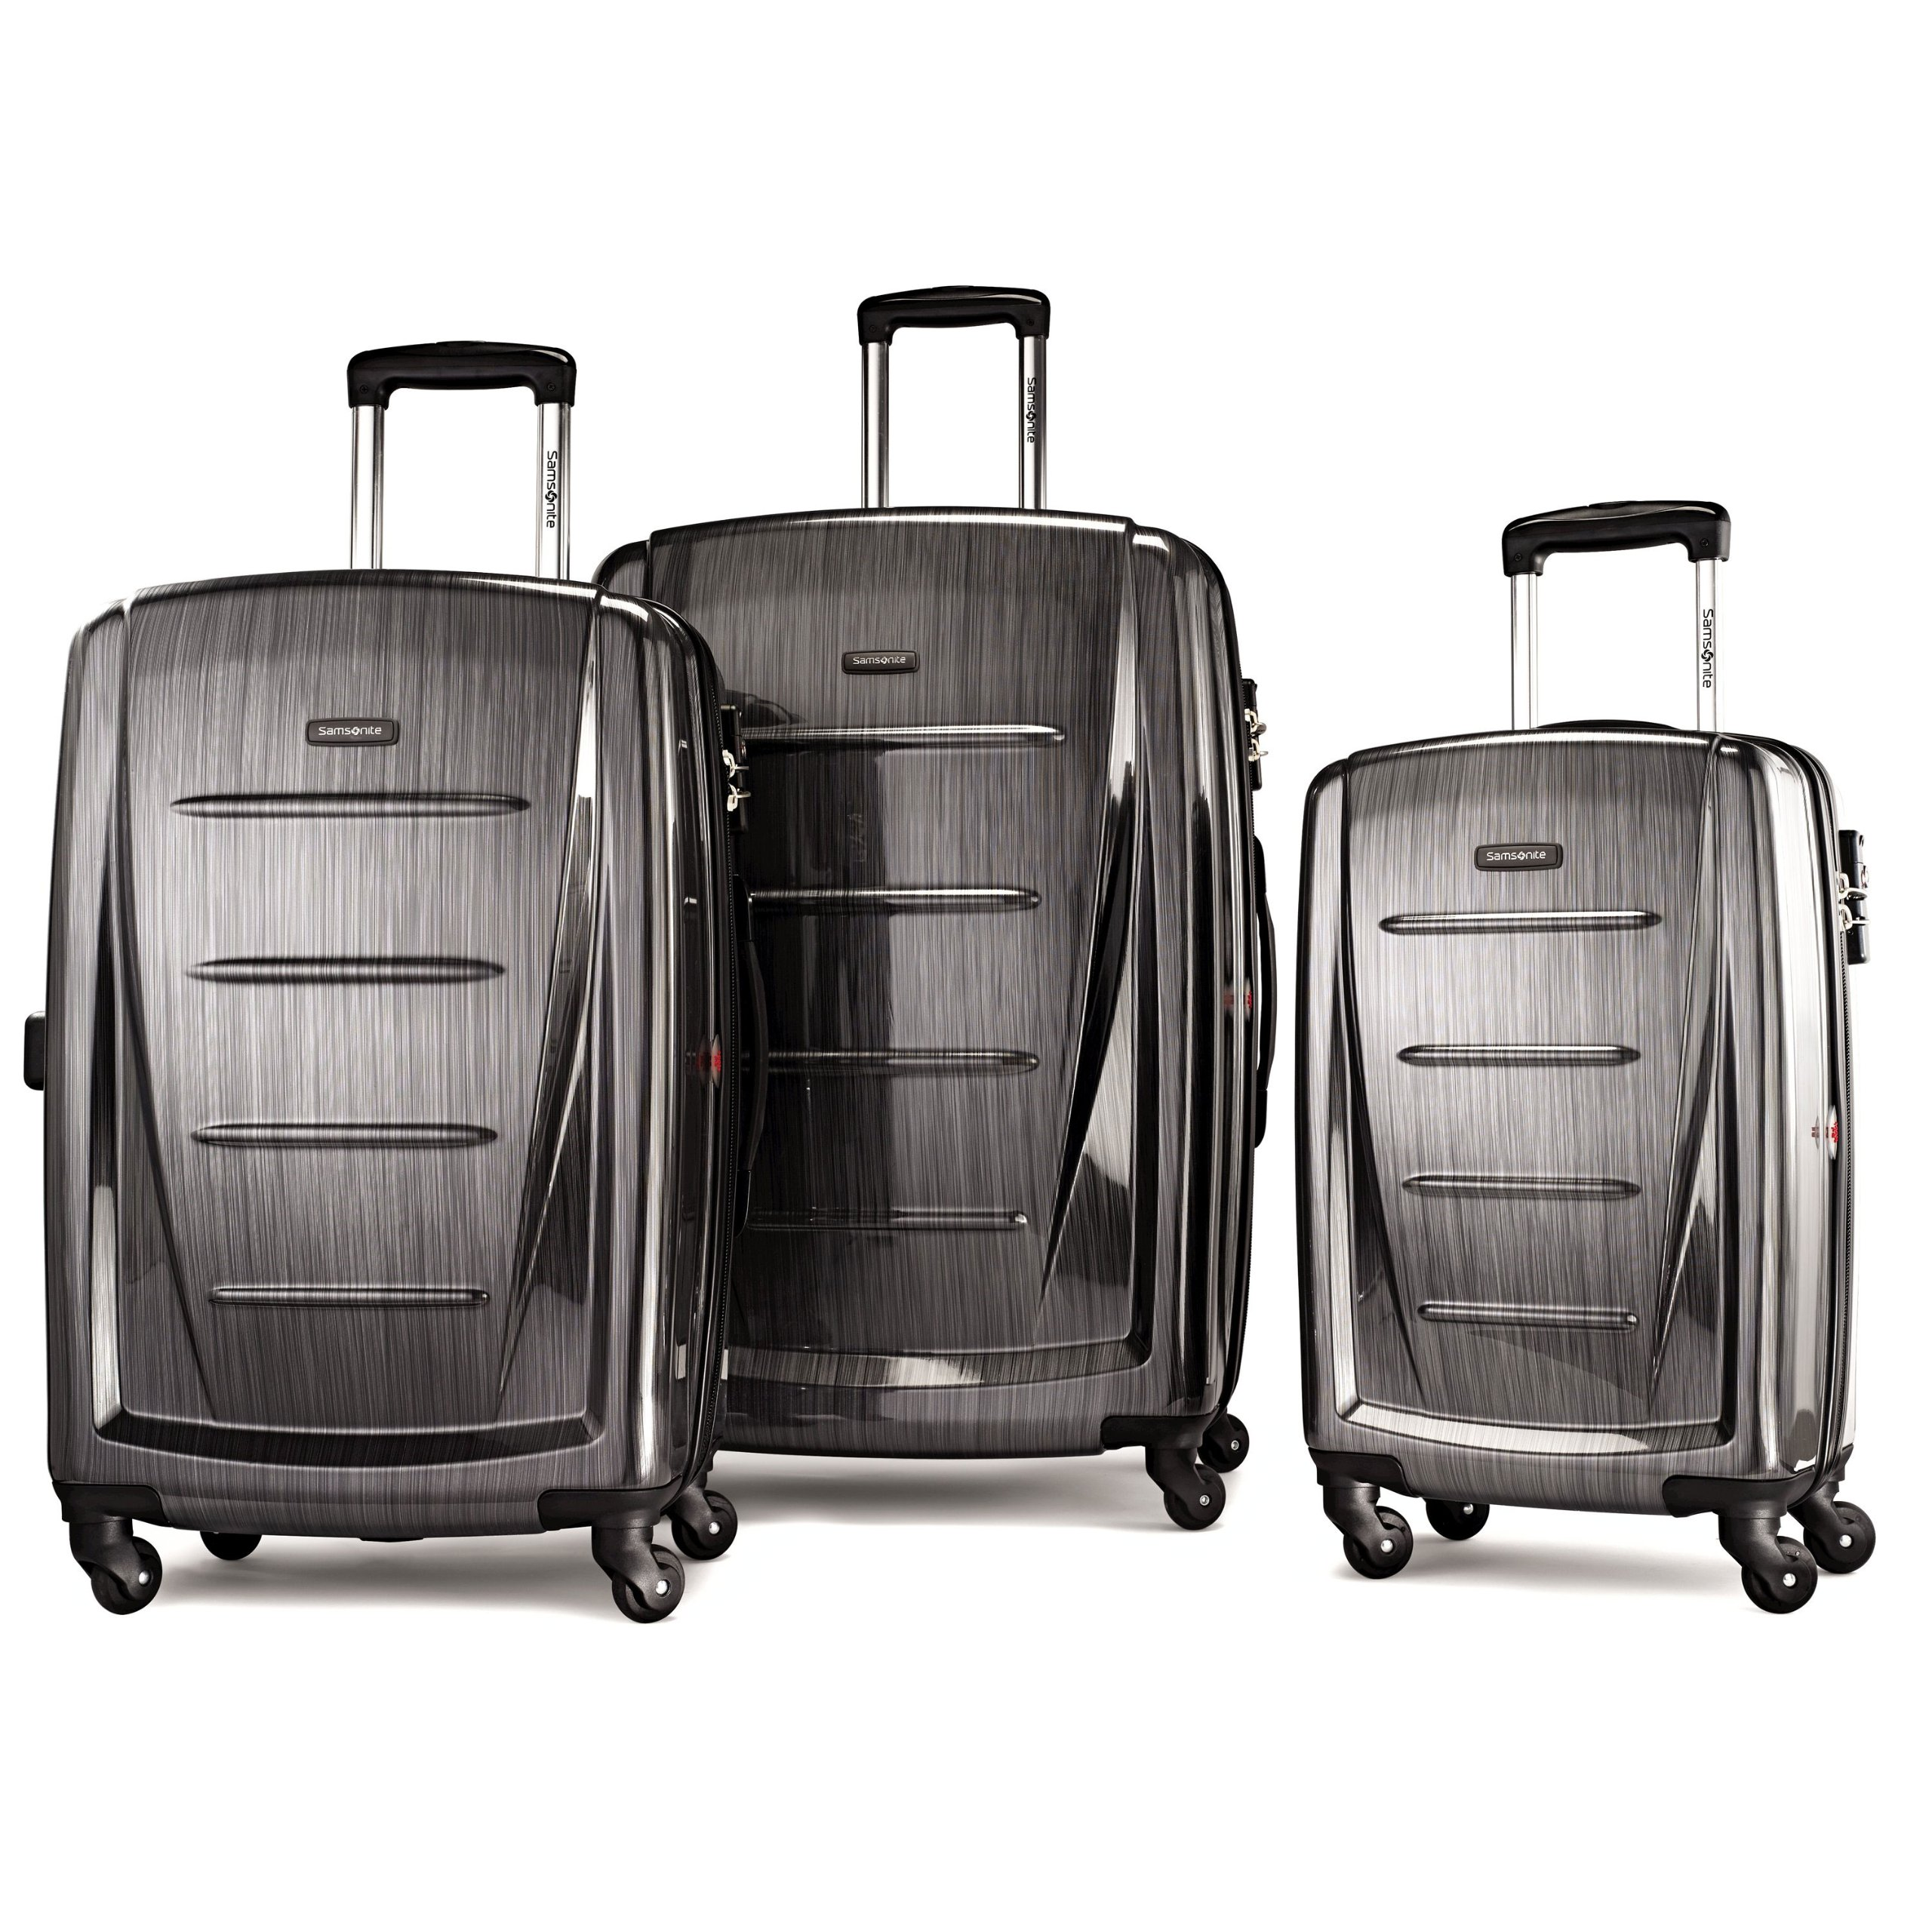 Samsonite Winfield 2 3PC Hardside (20/24/28) Luggage Set, Charcoal by Samsonite